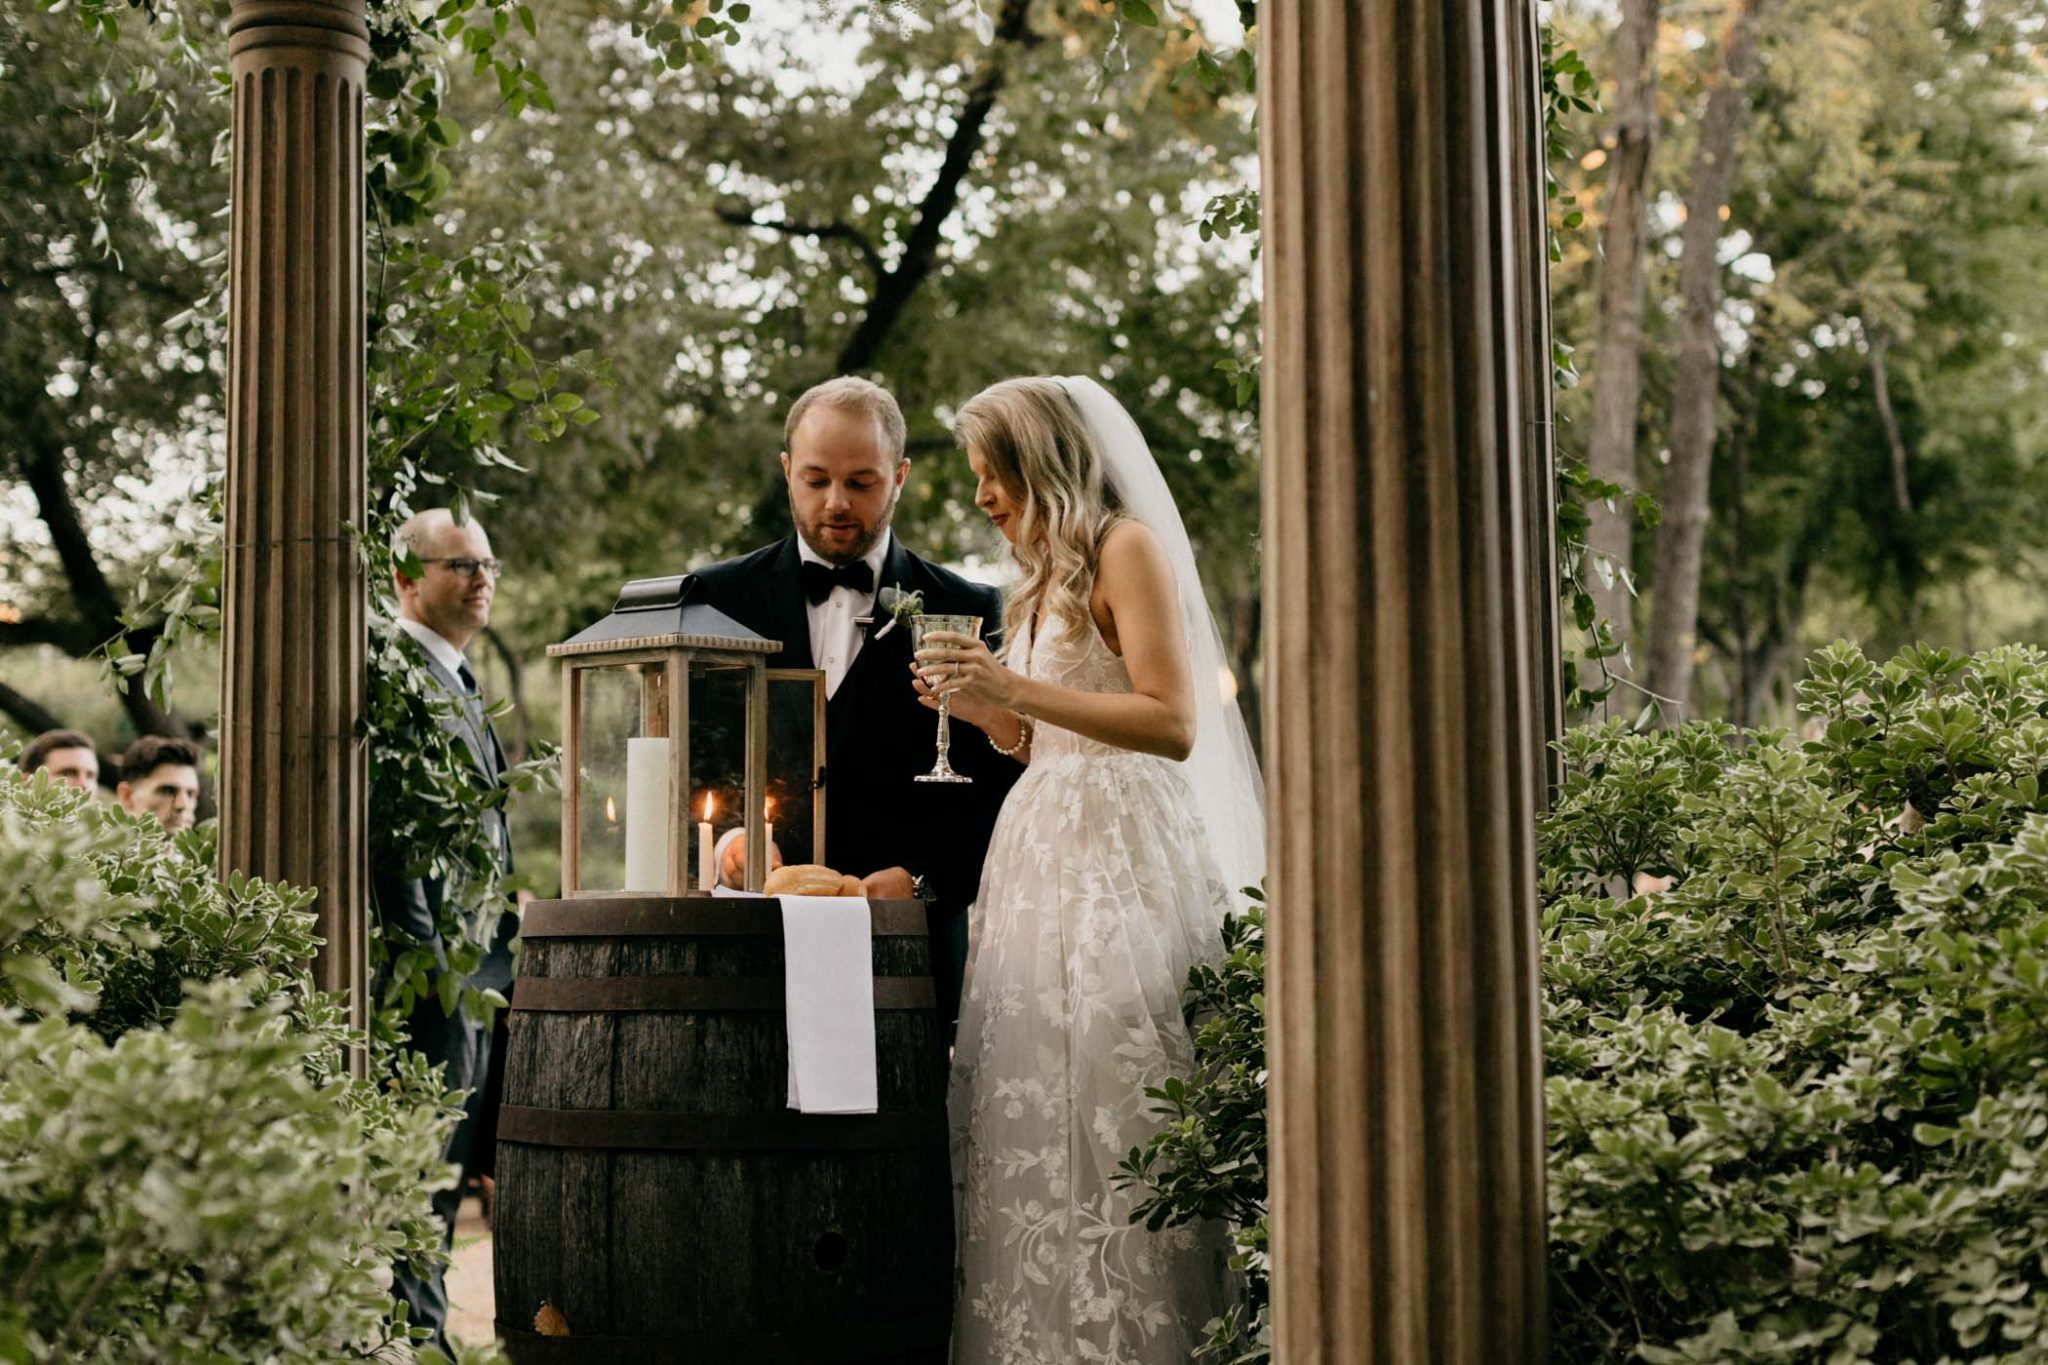 bride and groom lighting a unity candle at their elegant outdoor wedding ceremony